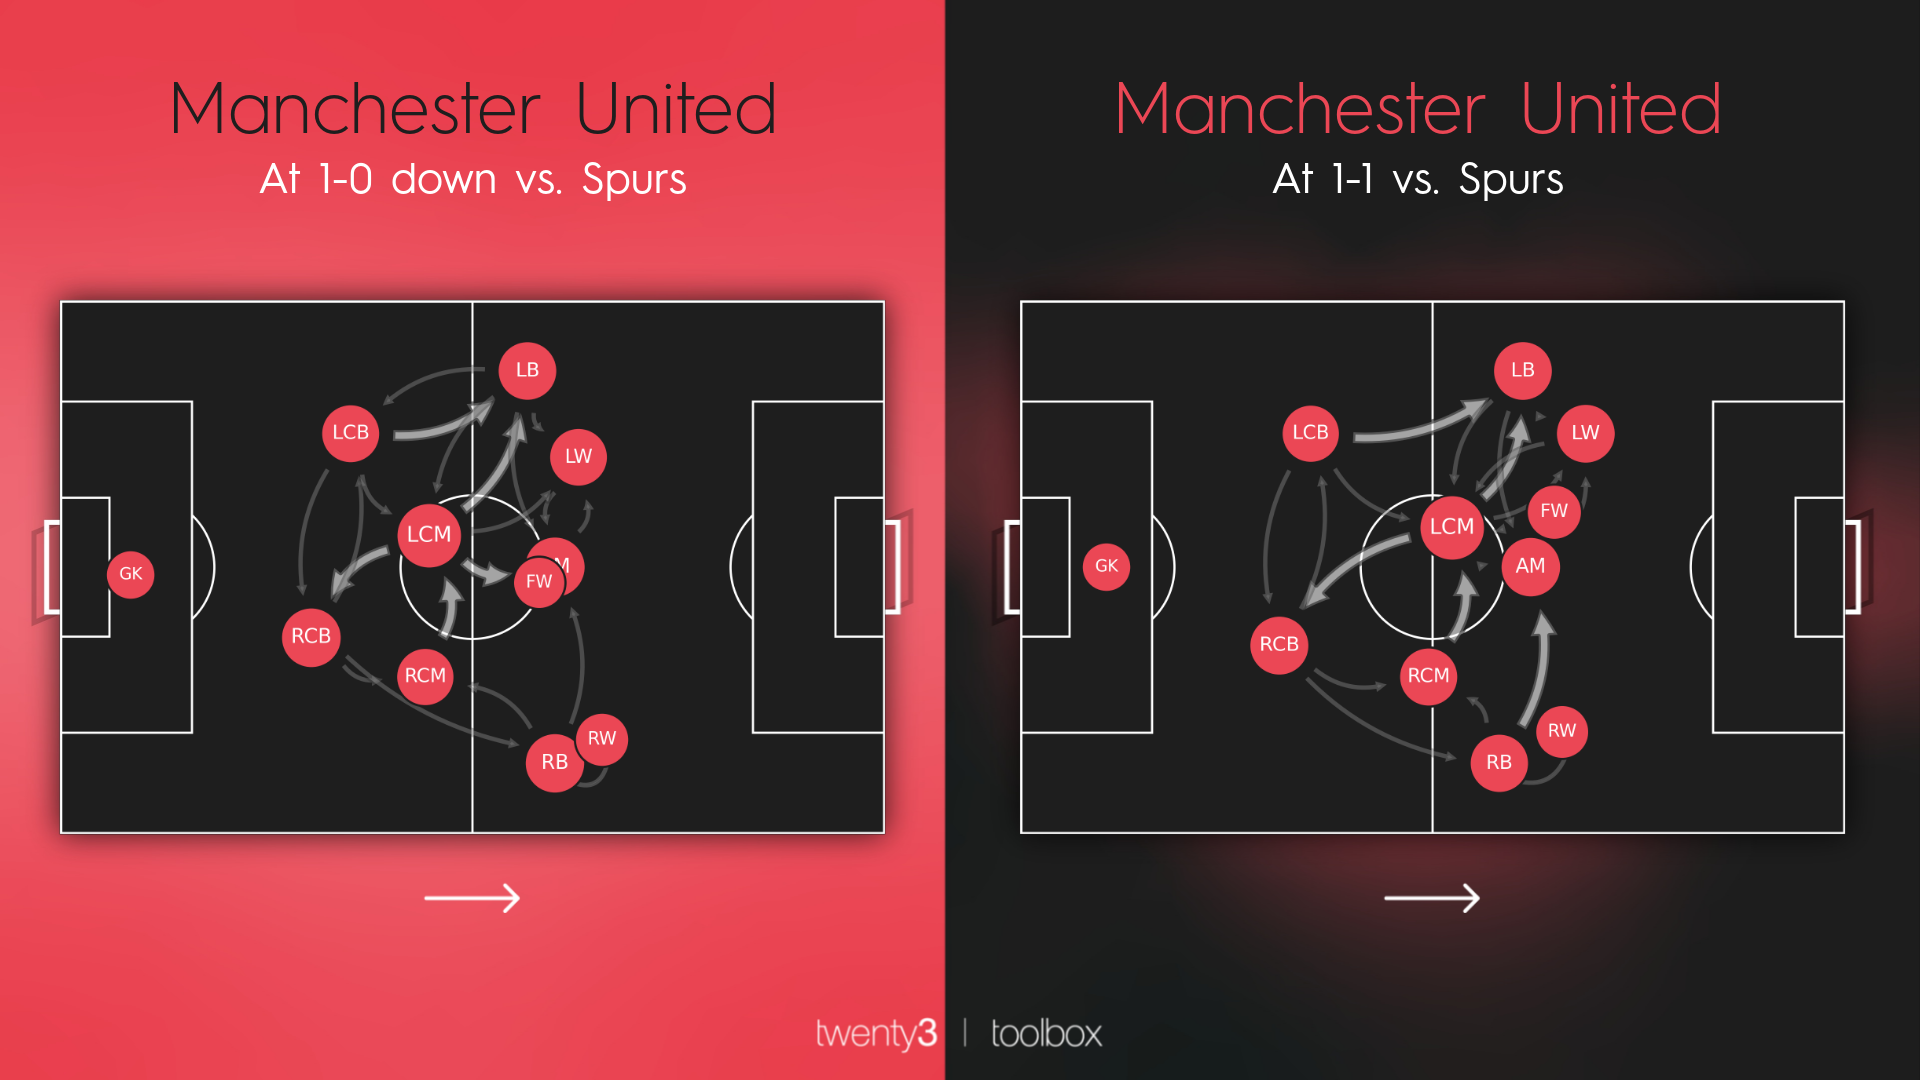 Manchester United passing network comparison when losing and drawing vs Spurs.